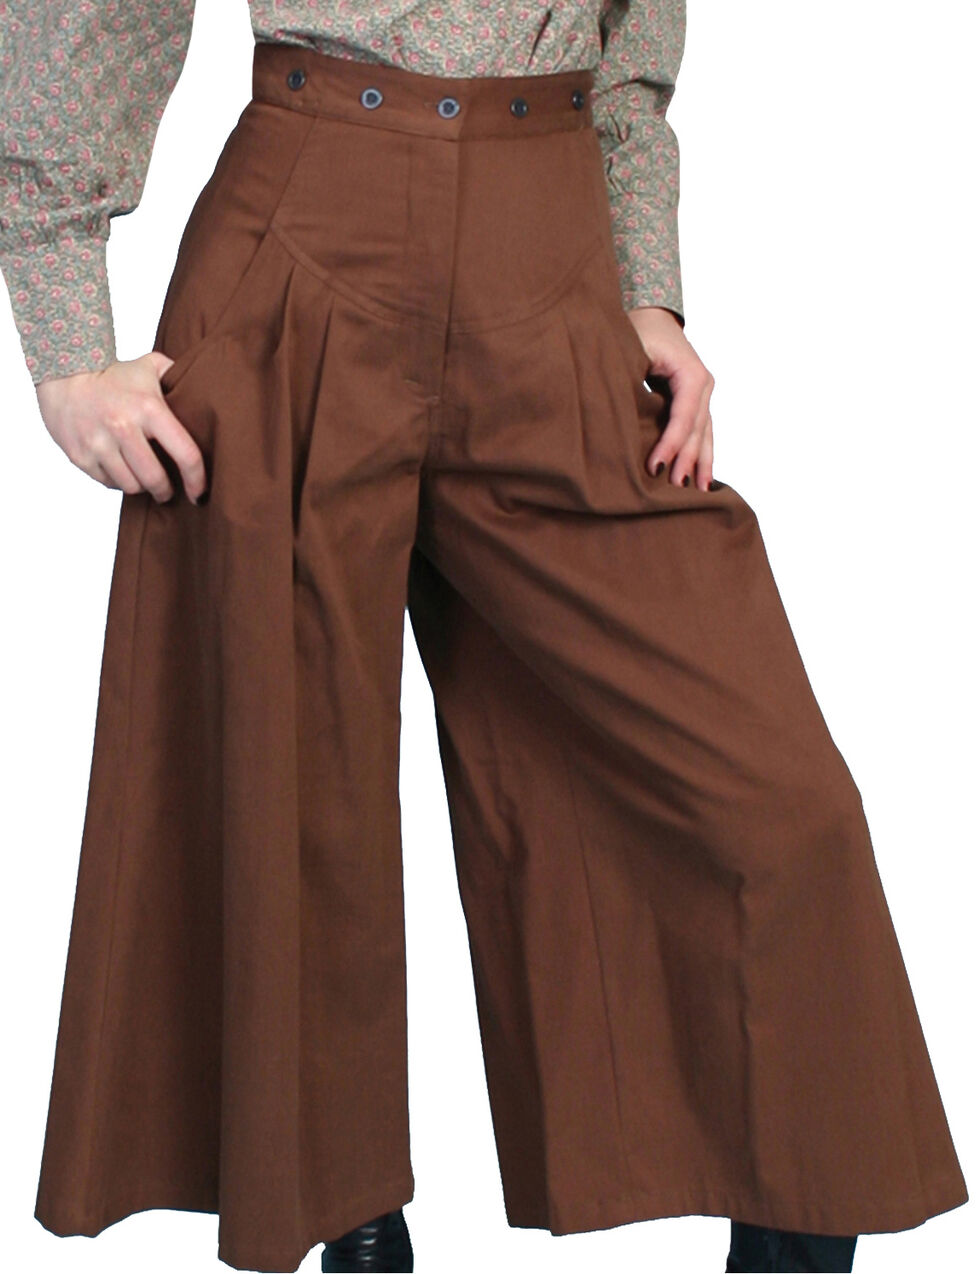 Rangewear by Scully Brushed Twill Riding Pants, Brown, hi-res